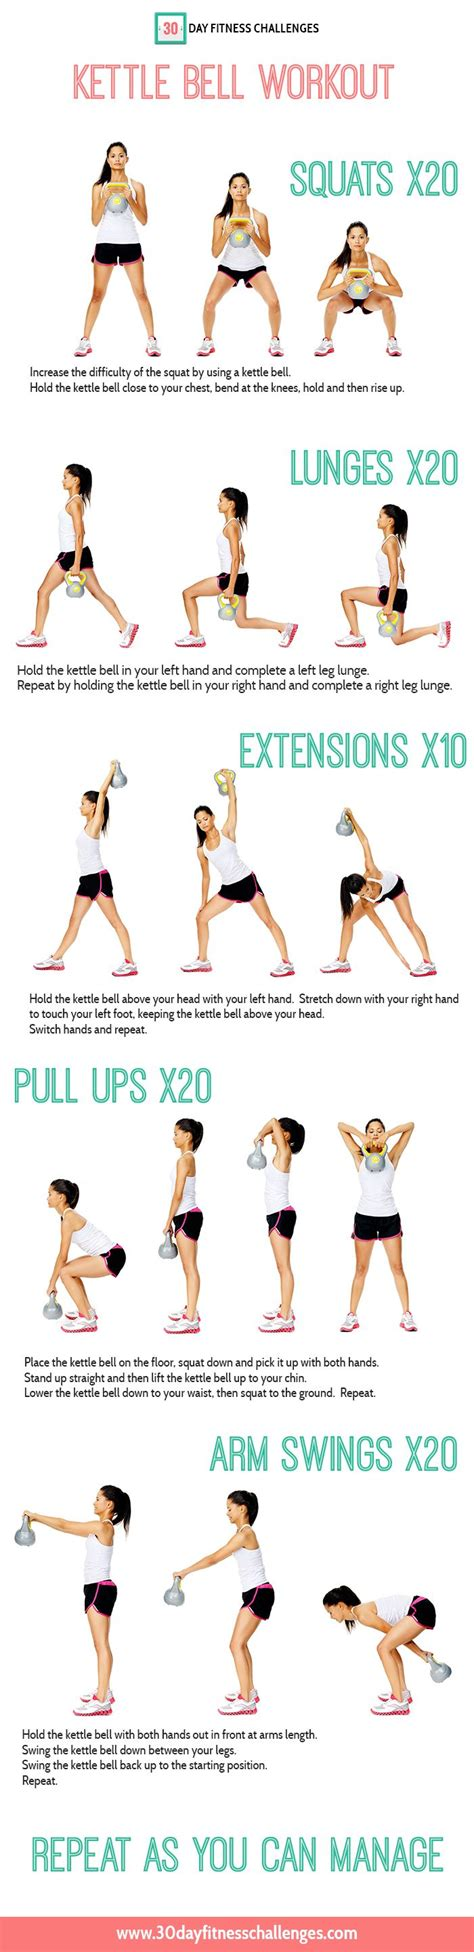 workout wednesday kettlebells health fitness